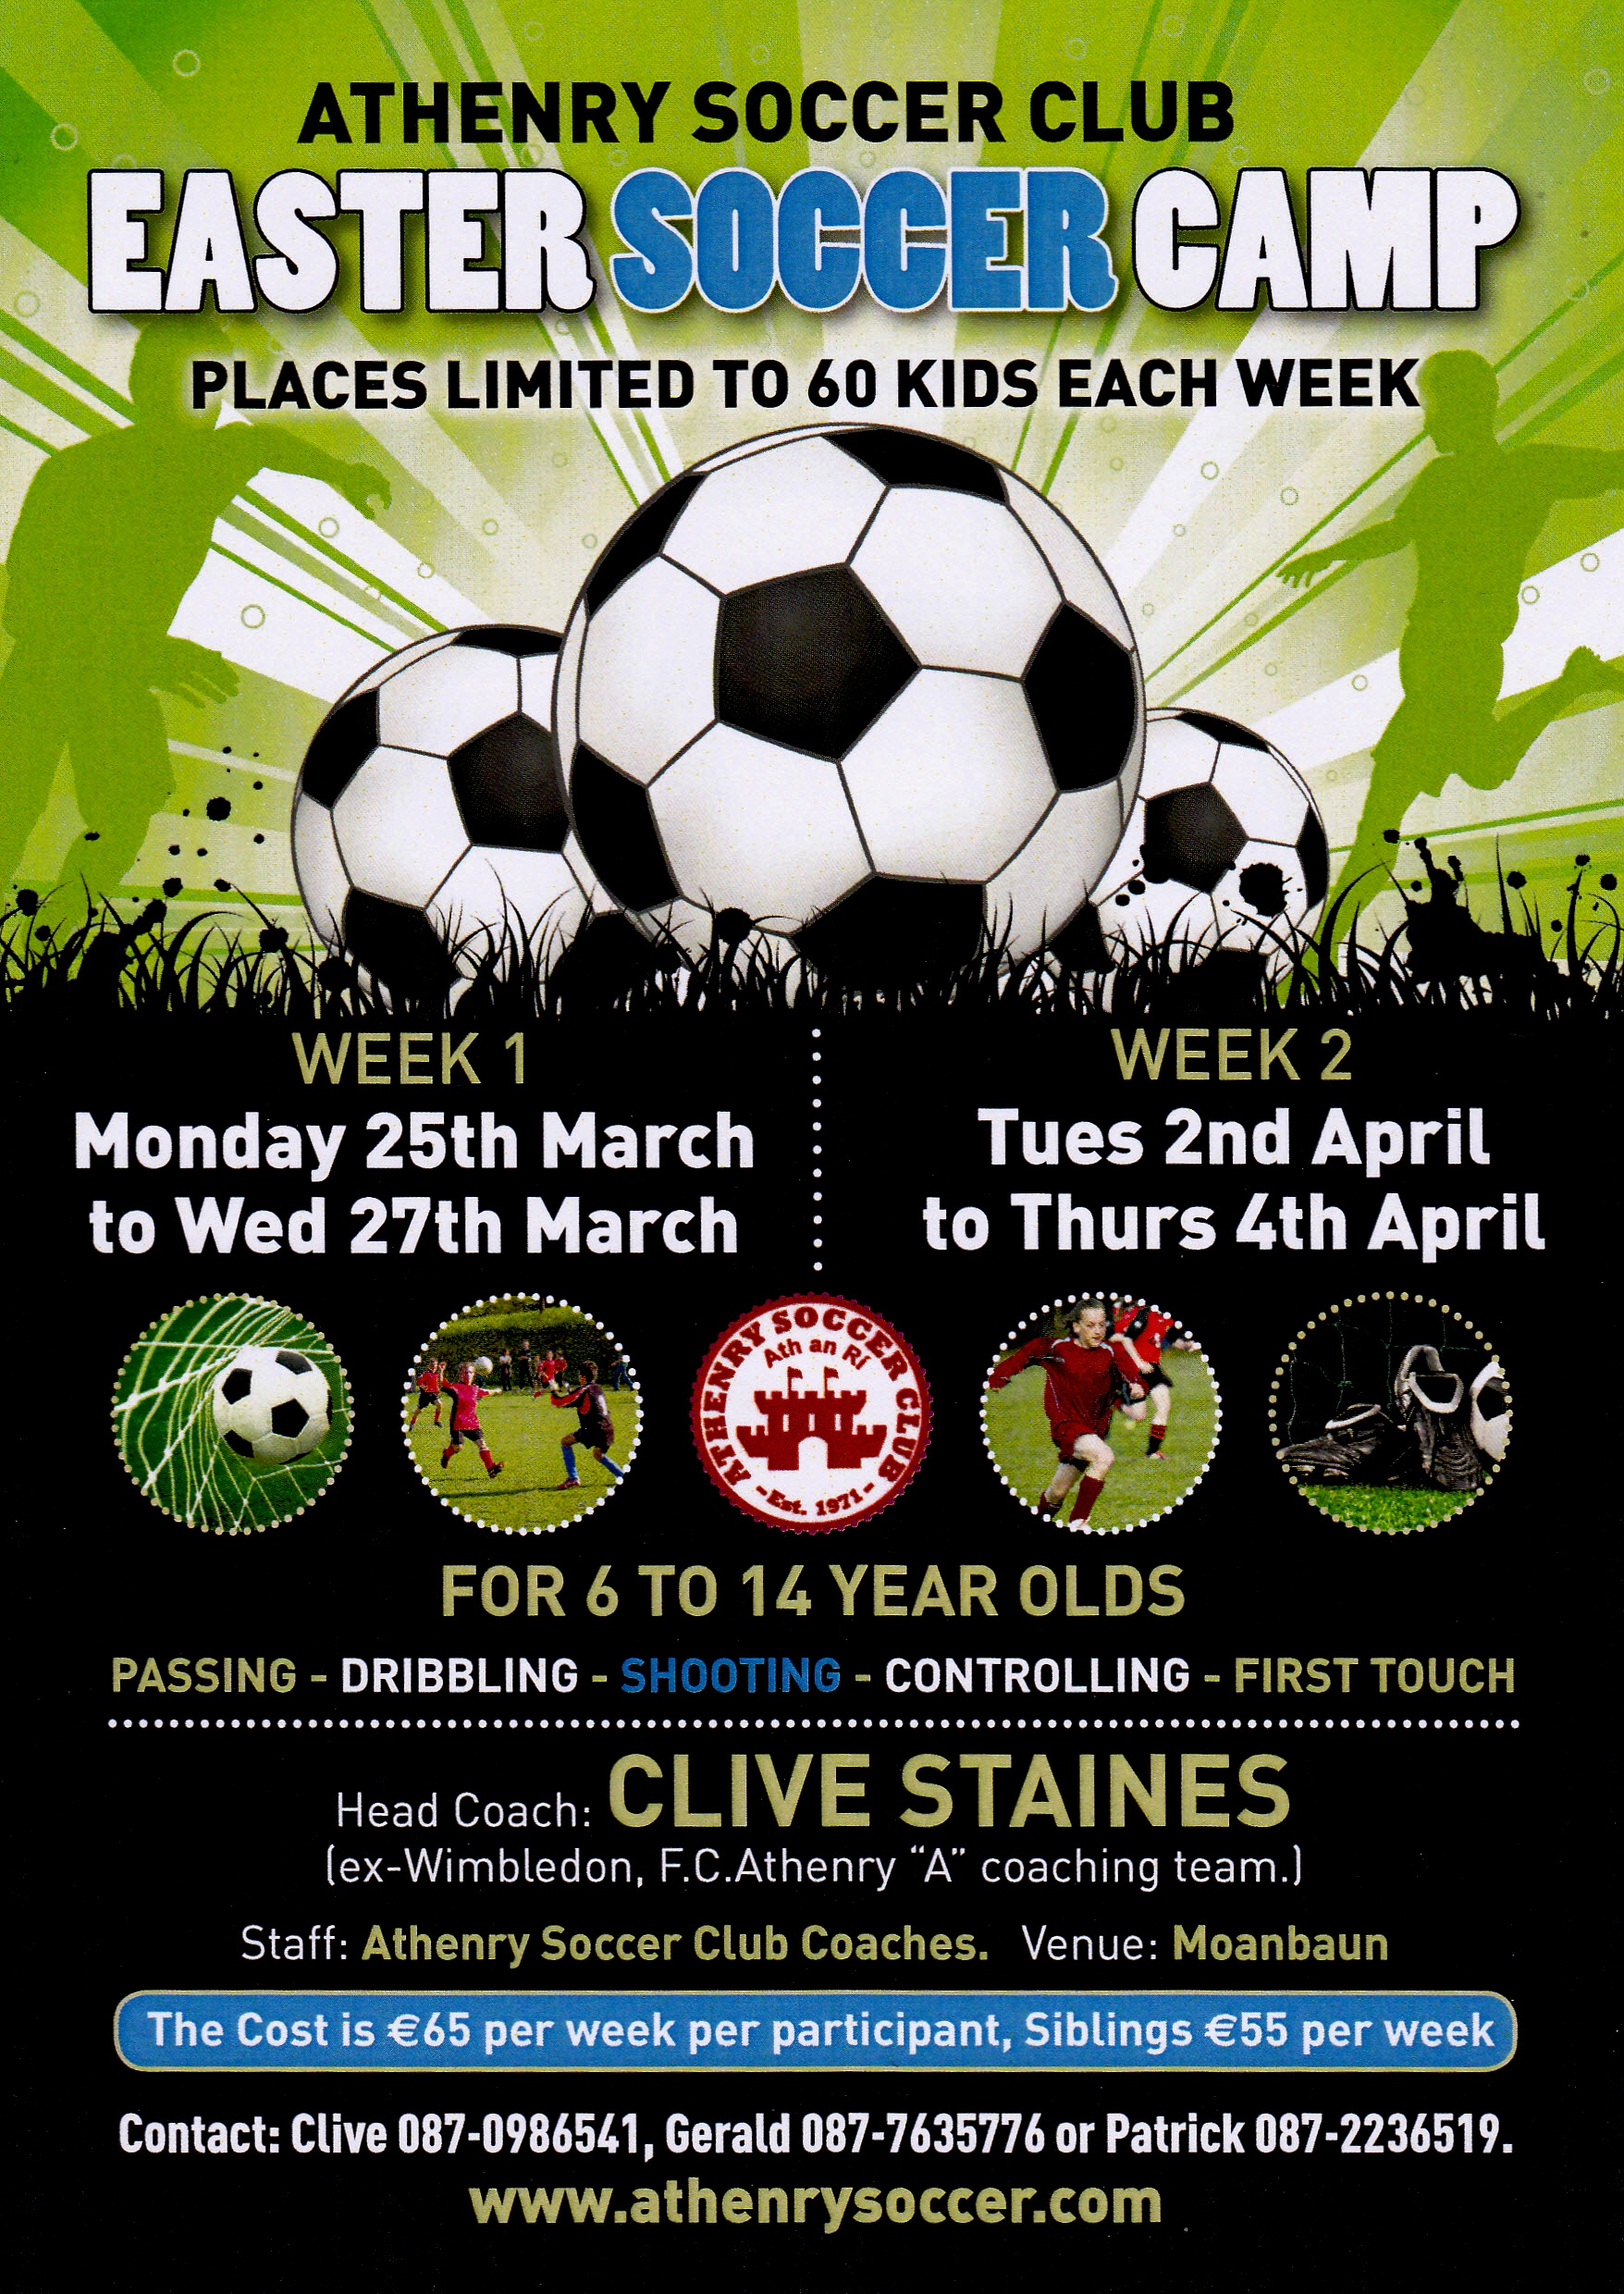 ATHENRY EASTER SOCCER CAMP 